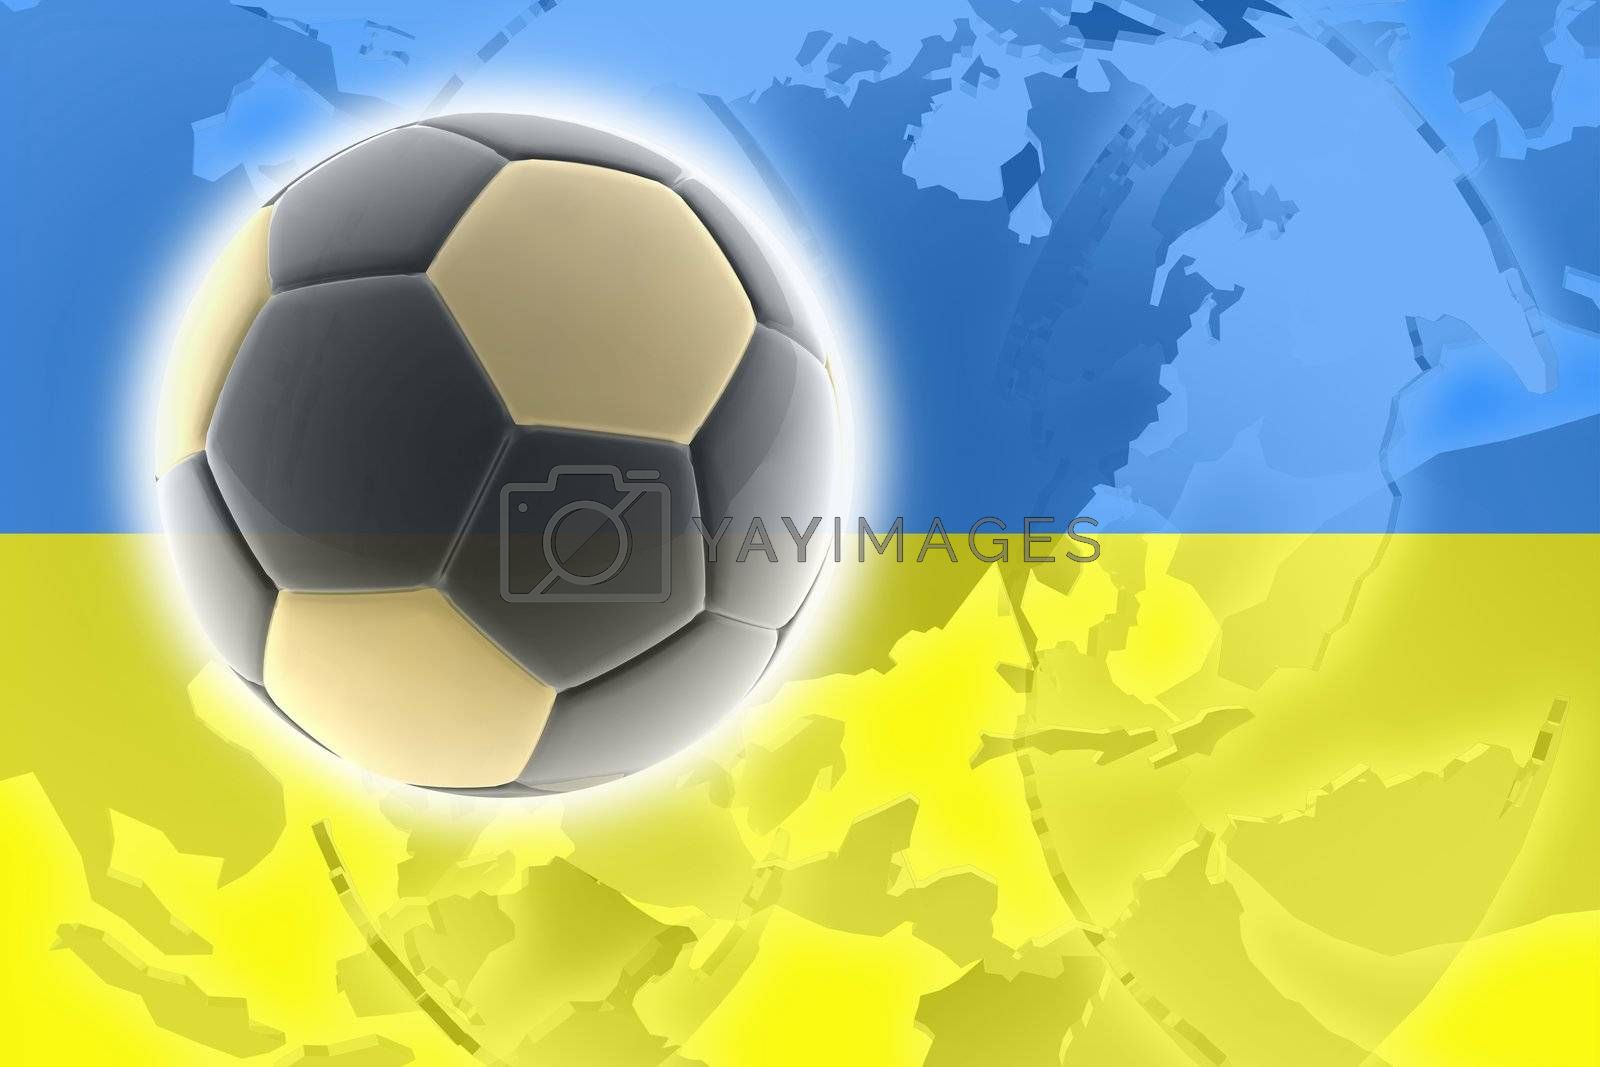 Royalty free image of Flag of Ukraine soccer by kgtoh